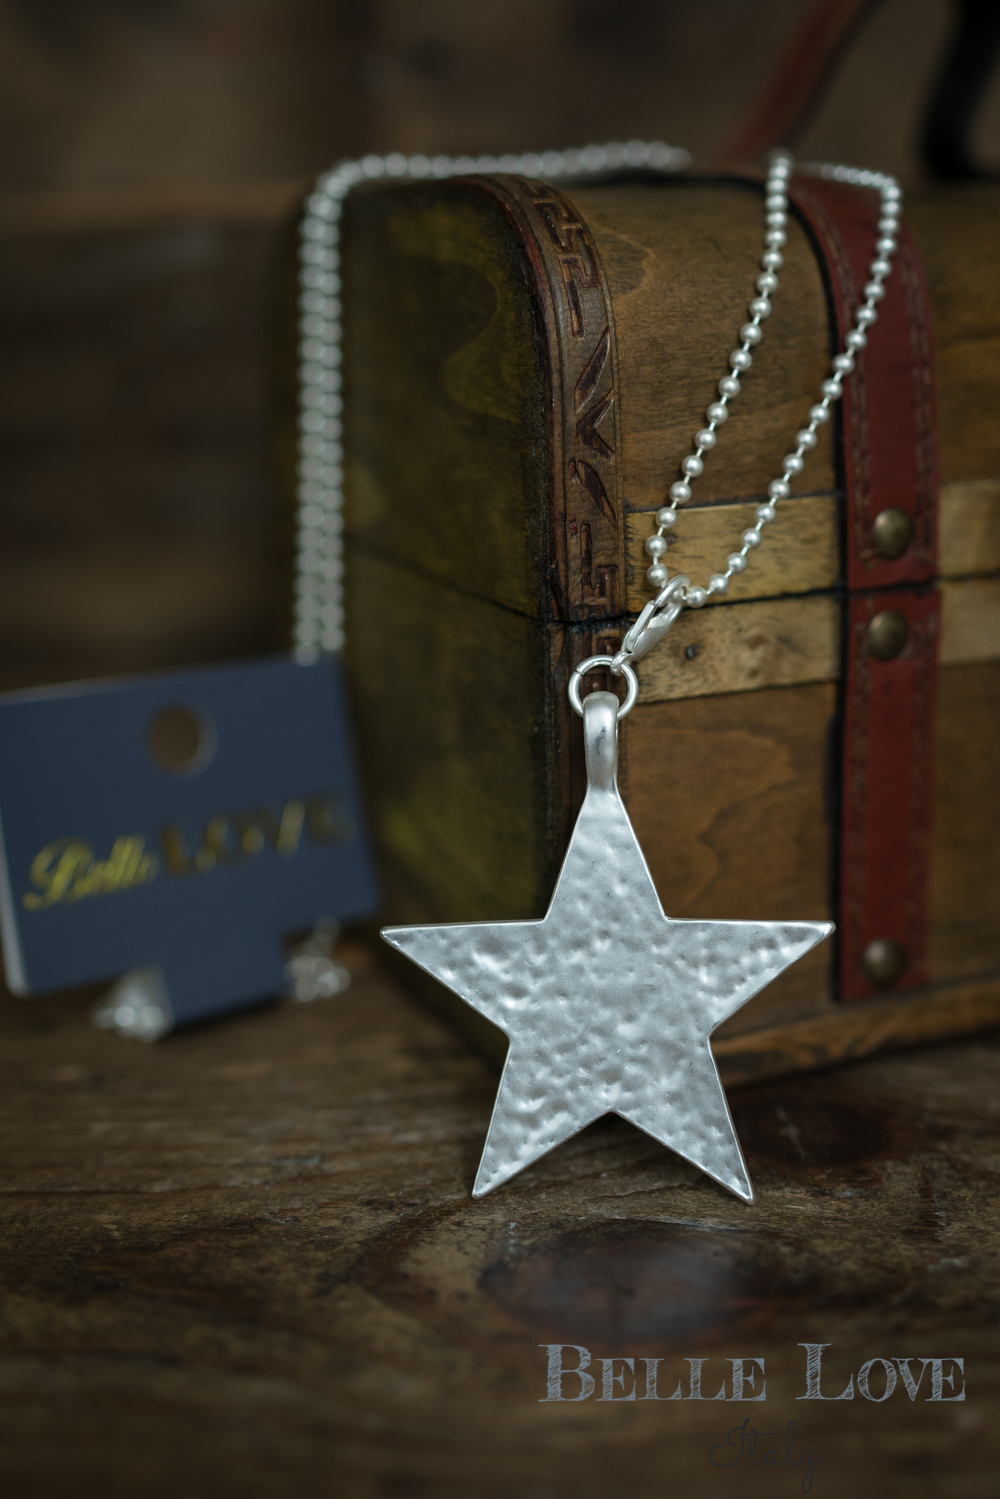 Belle Love Italy Beaten Star Pendant Necklace